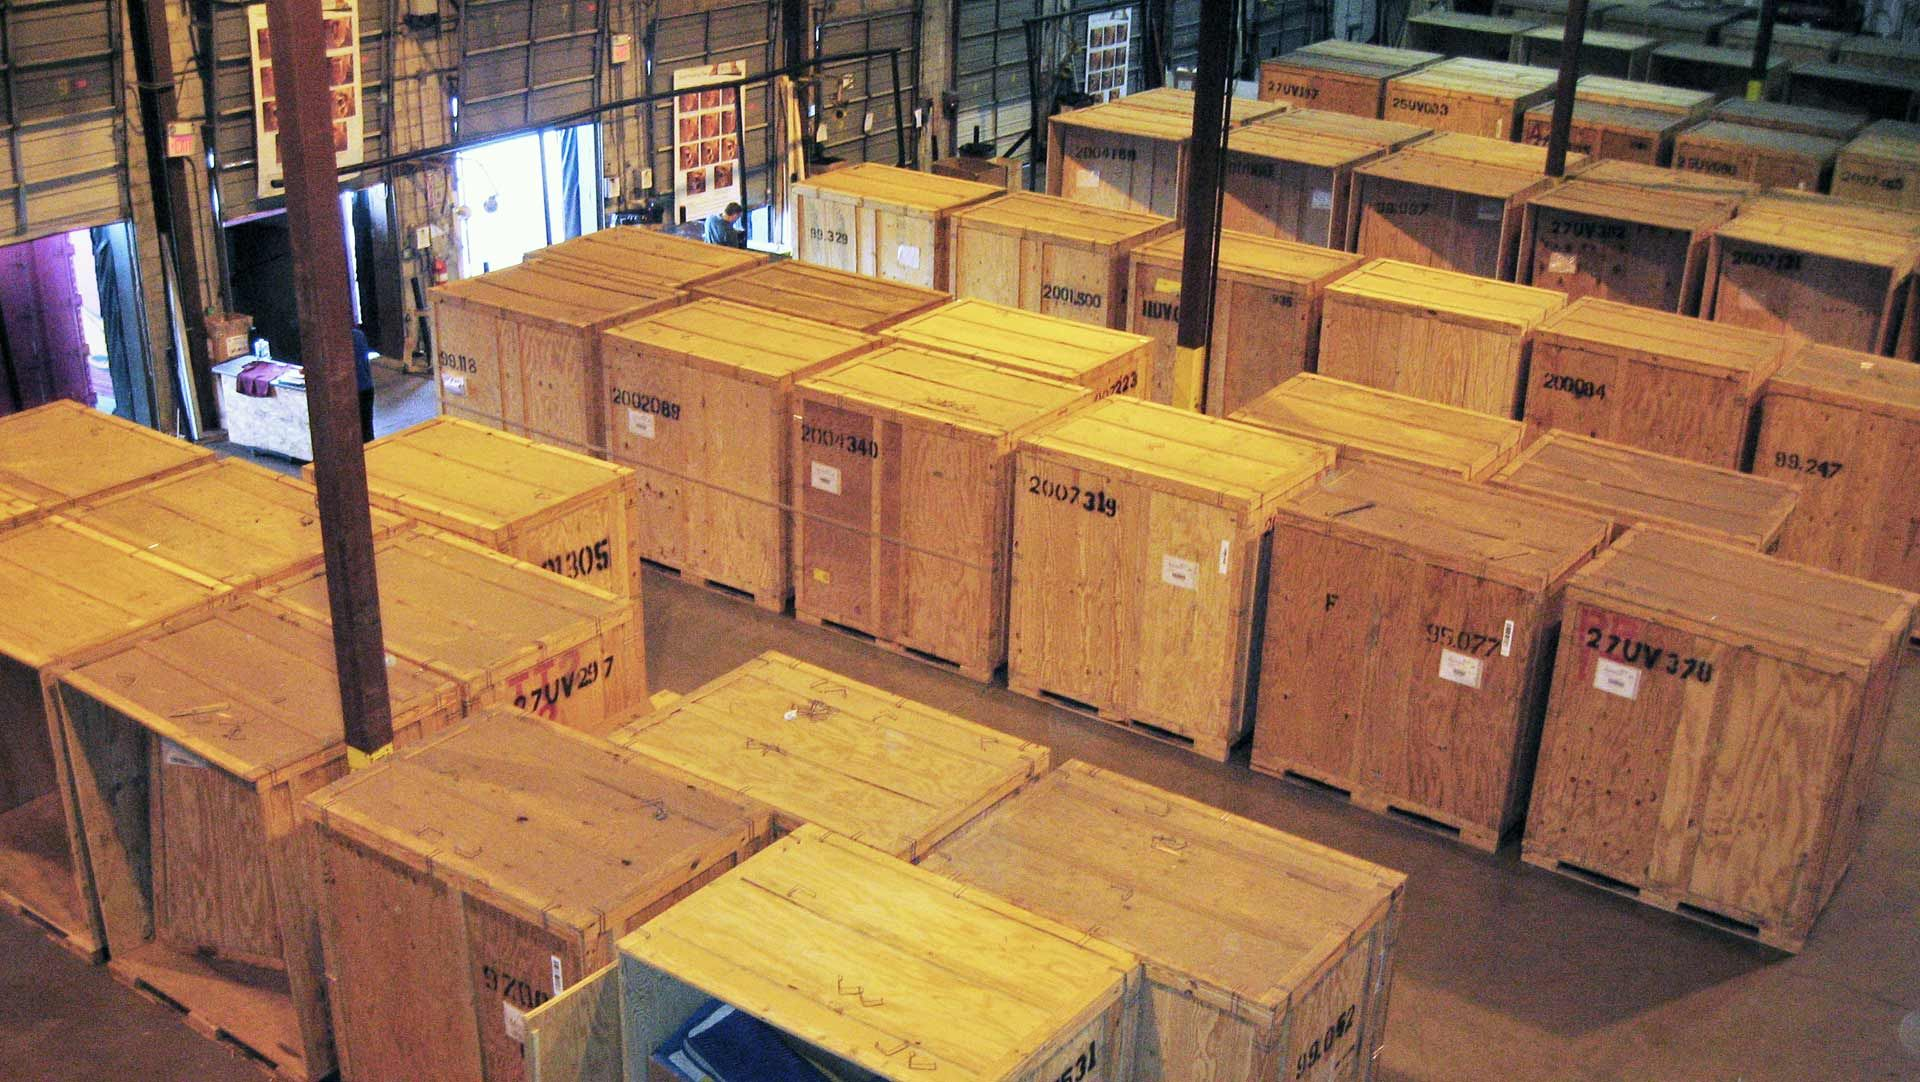 At perfect movers cargo we apply special packing and